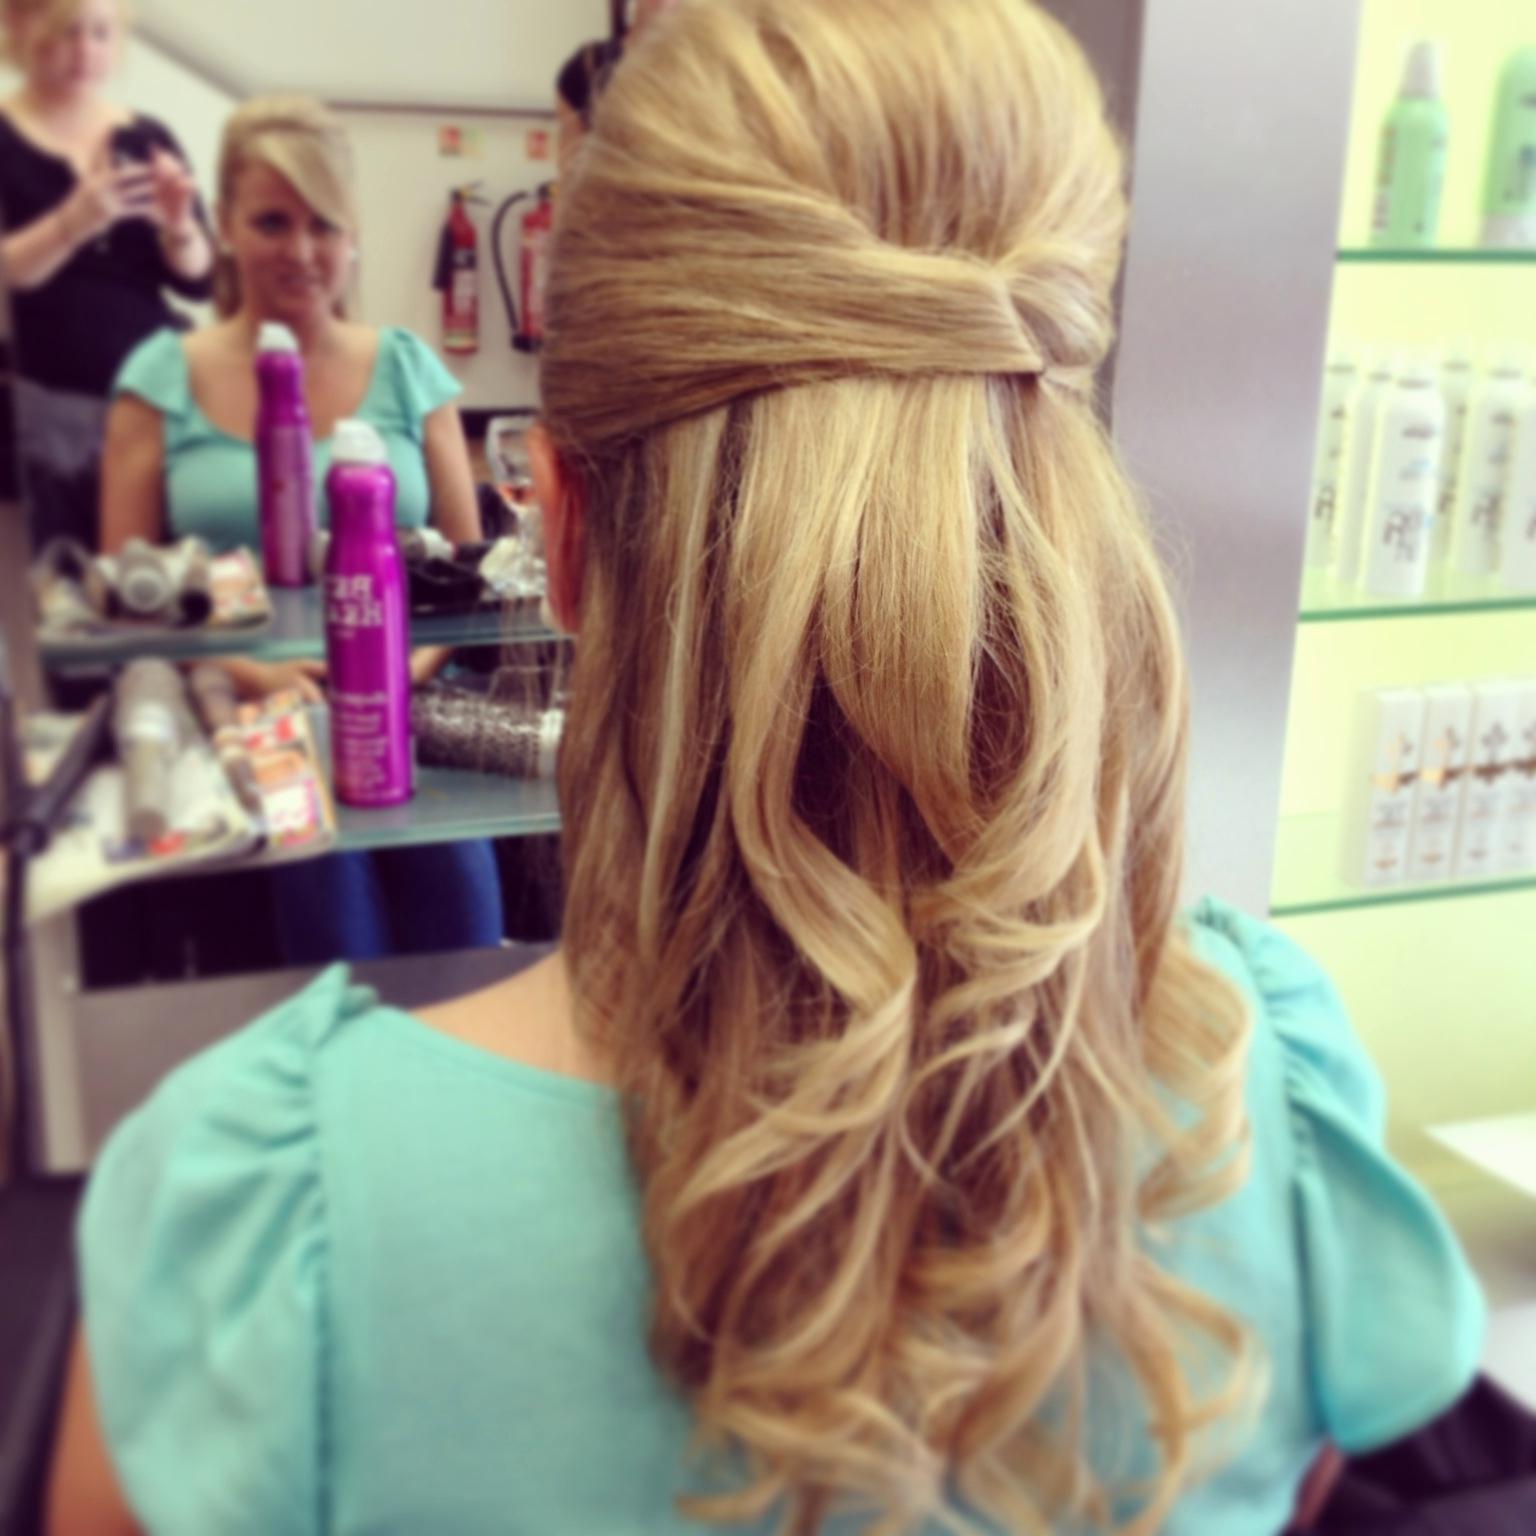 Most Current Half Up Half Down With Fringe Wedding Hairstyles Regarding Wedding Hair Half Up Half Down With Fringe Unique Wedding Hairstyles (View 9 of 15)